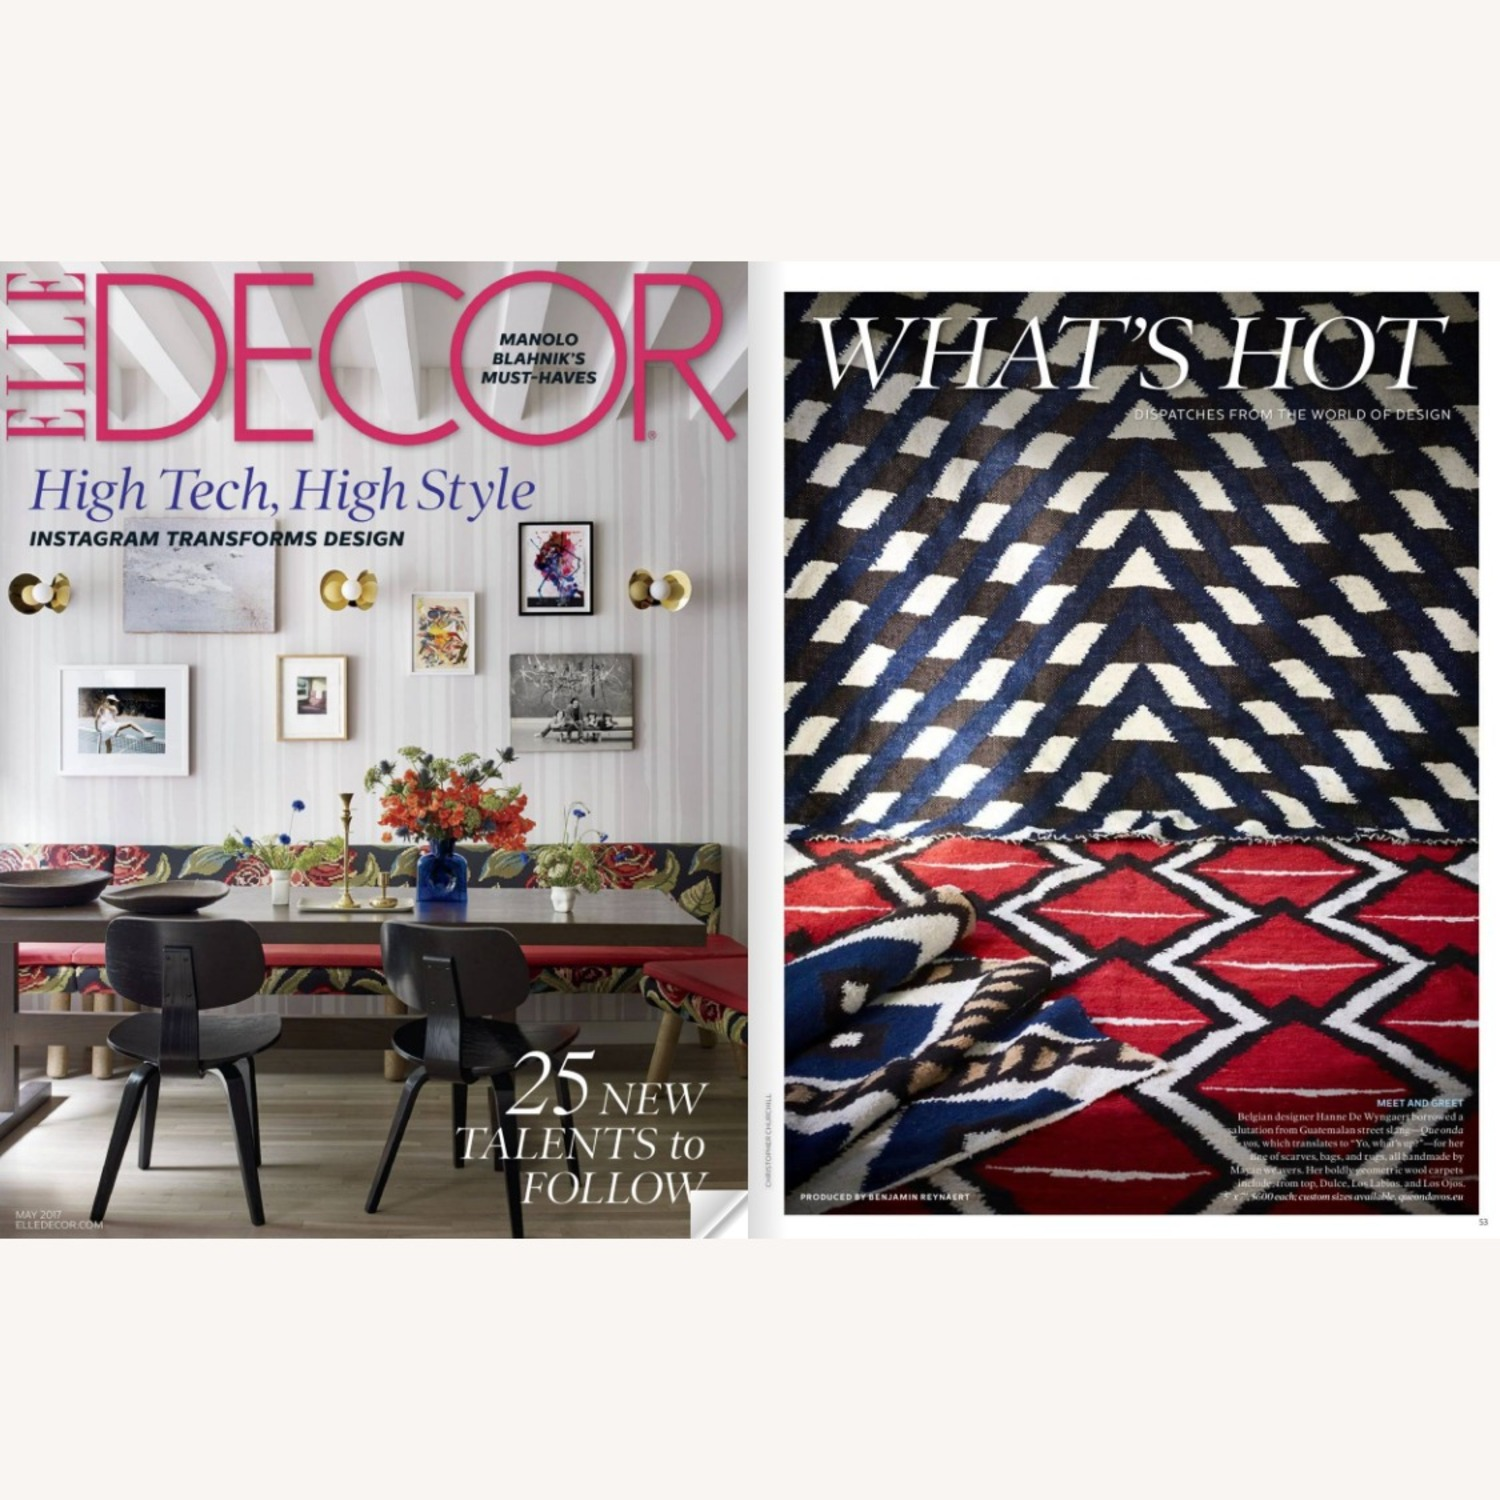 Artisan Rug featured in Elle Decor - image-3